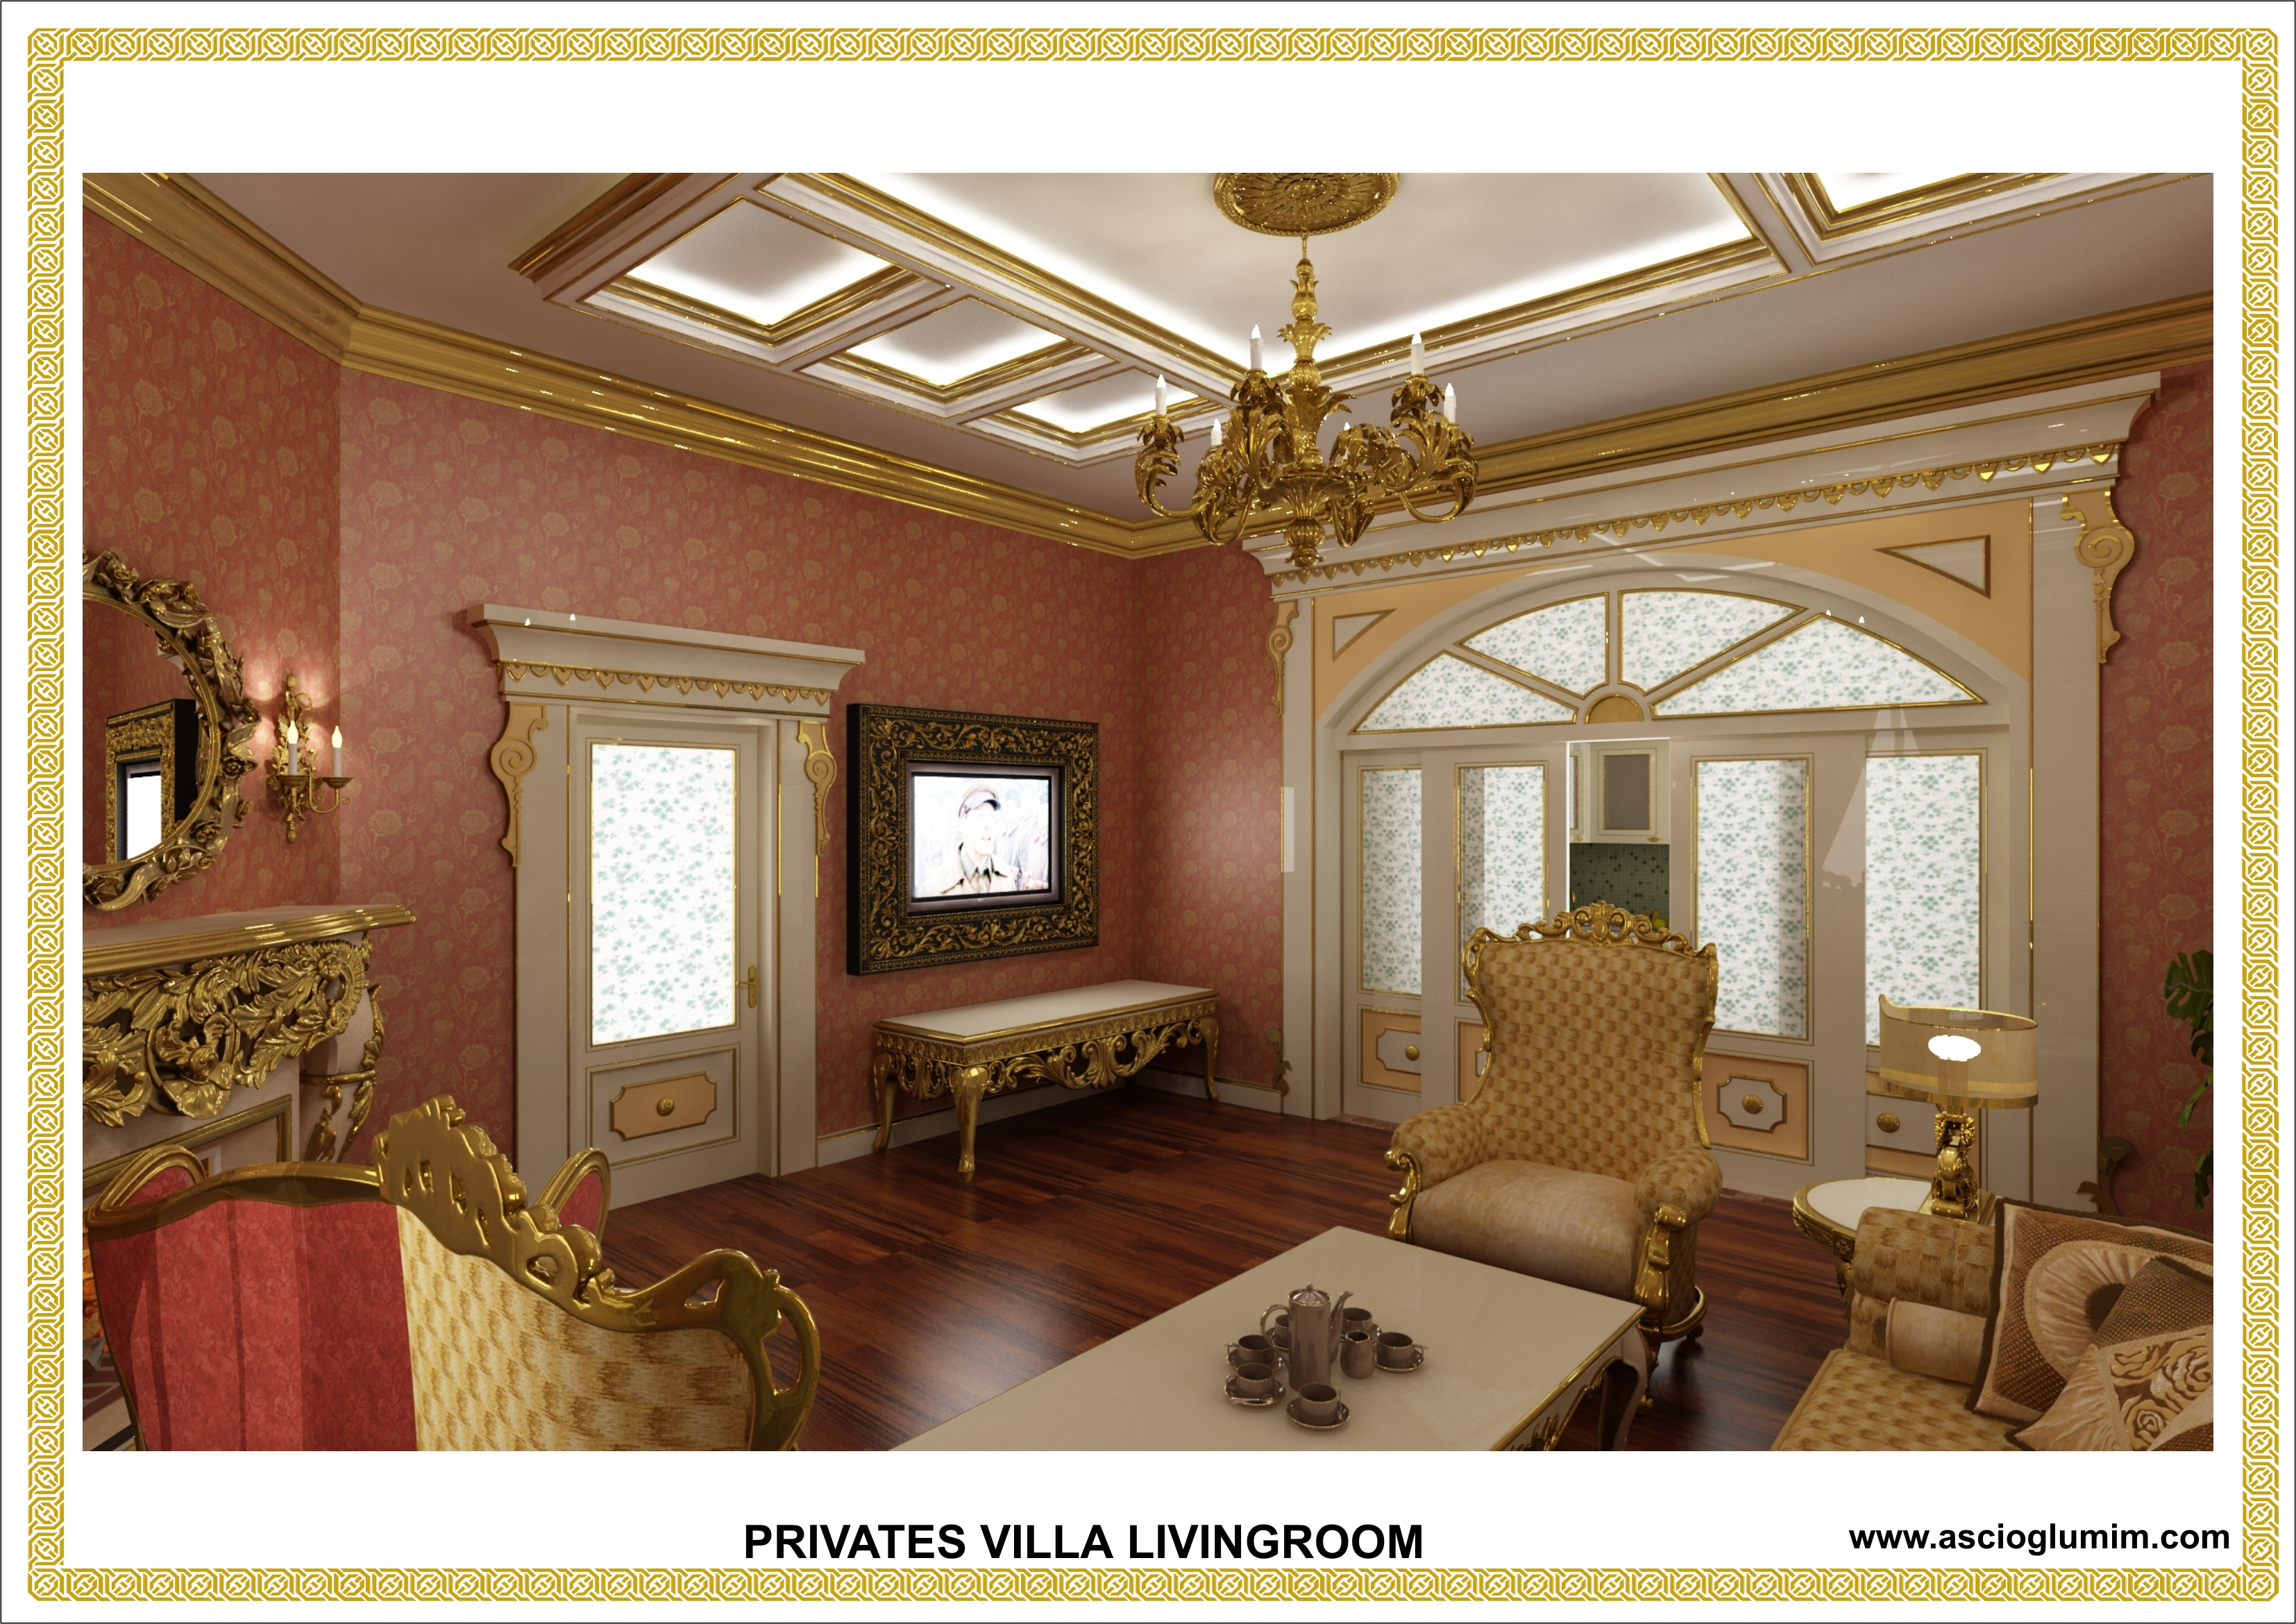 MR. AMIRAN SPECIAL VILLA DESIGN